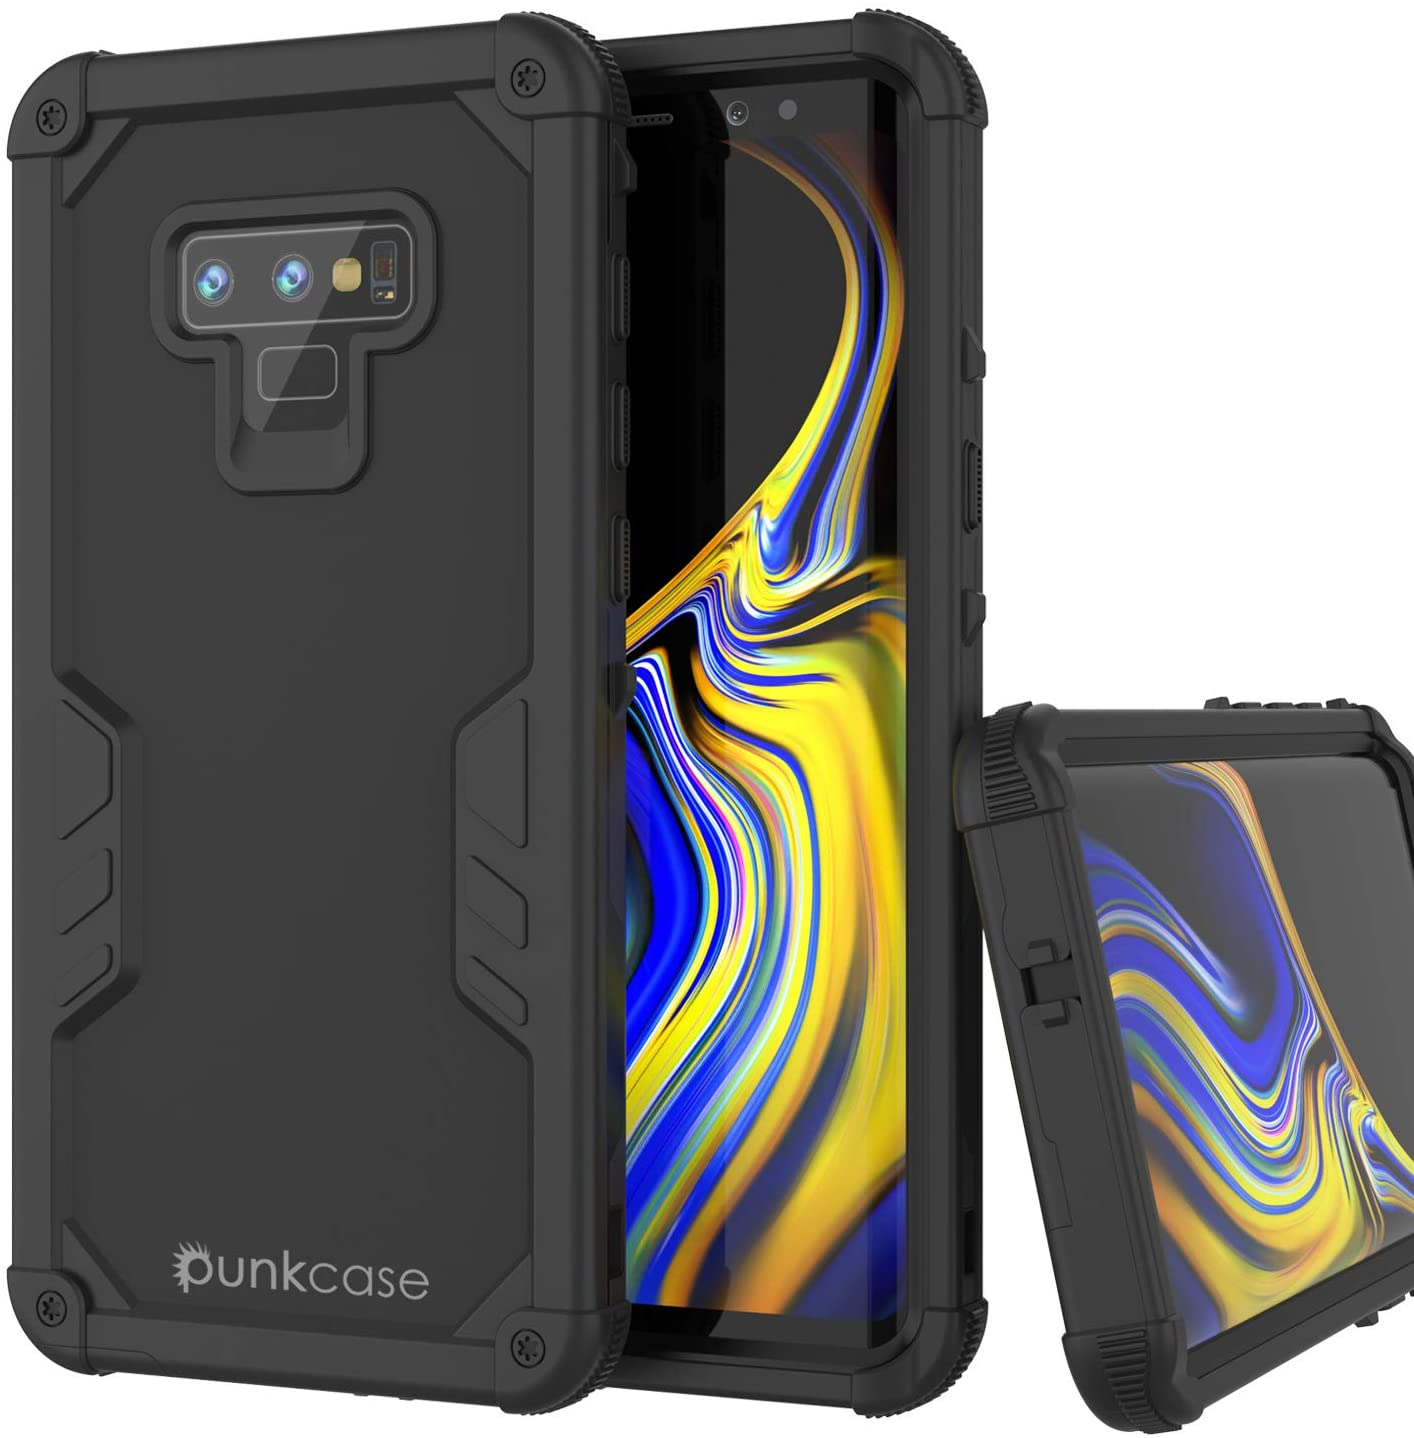 Punkcase Galaxy Note 9 Waterproof Case [Navy Seal Extreme Series] [Slim Fit] [IP68 Certified] [Shockproof] [Dirtproof] 360 Full Body Armor Cover Compatible with Samsung Galaxy Note 9 [Black]